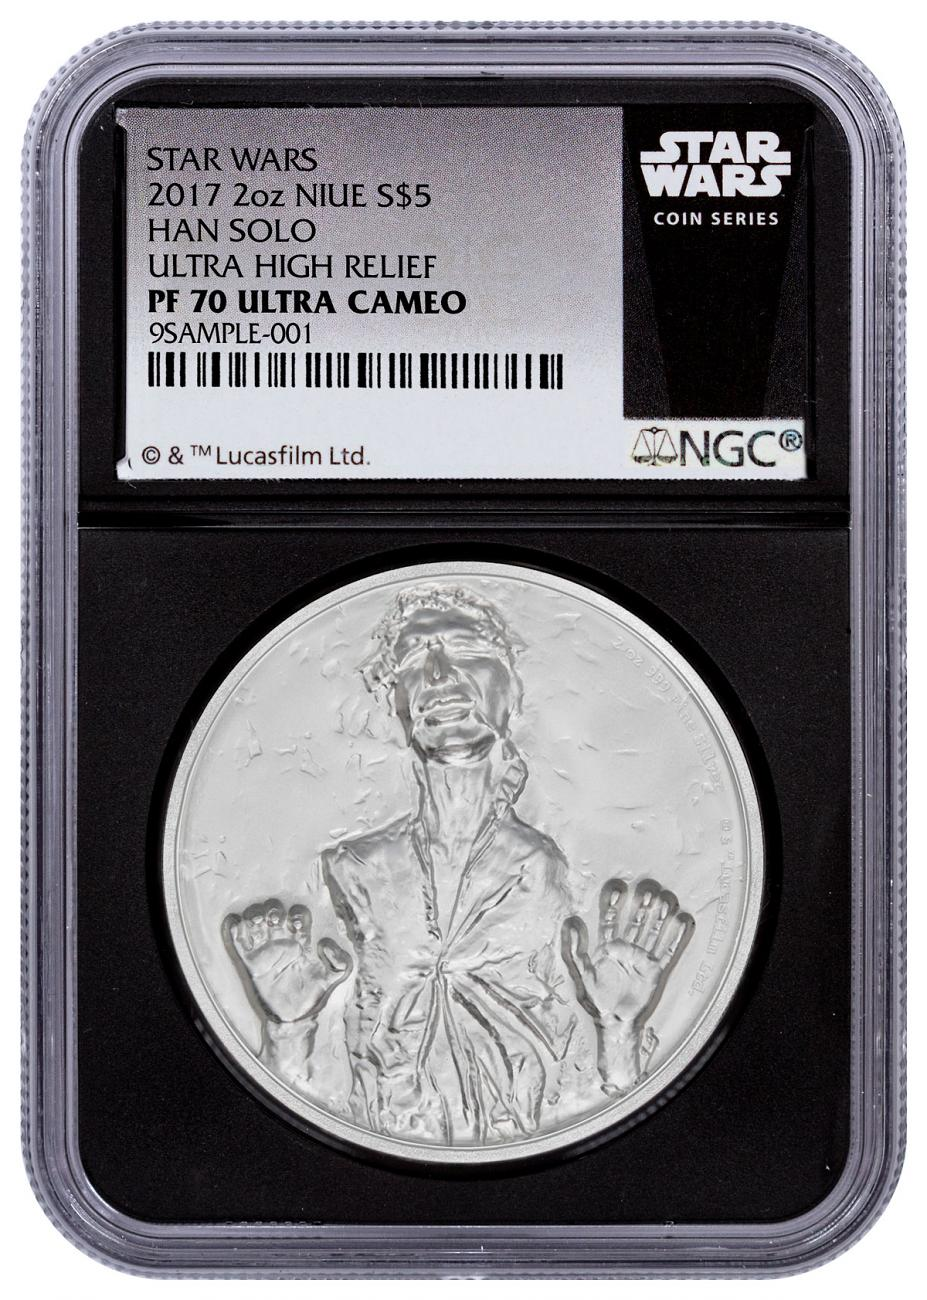 2017 Niue Star Wars Classic - Han Solo Ultra High Relief 2 oz Silver Proof $5 Coin NGC PF70 UC Black Core Holder Exclusive Star Wars Label